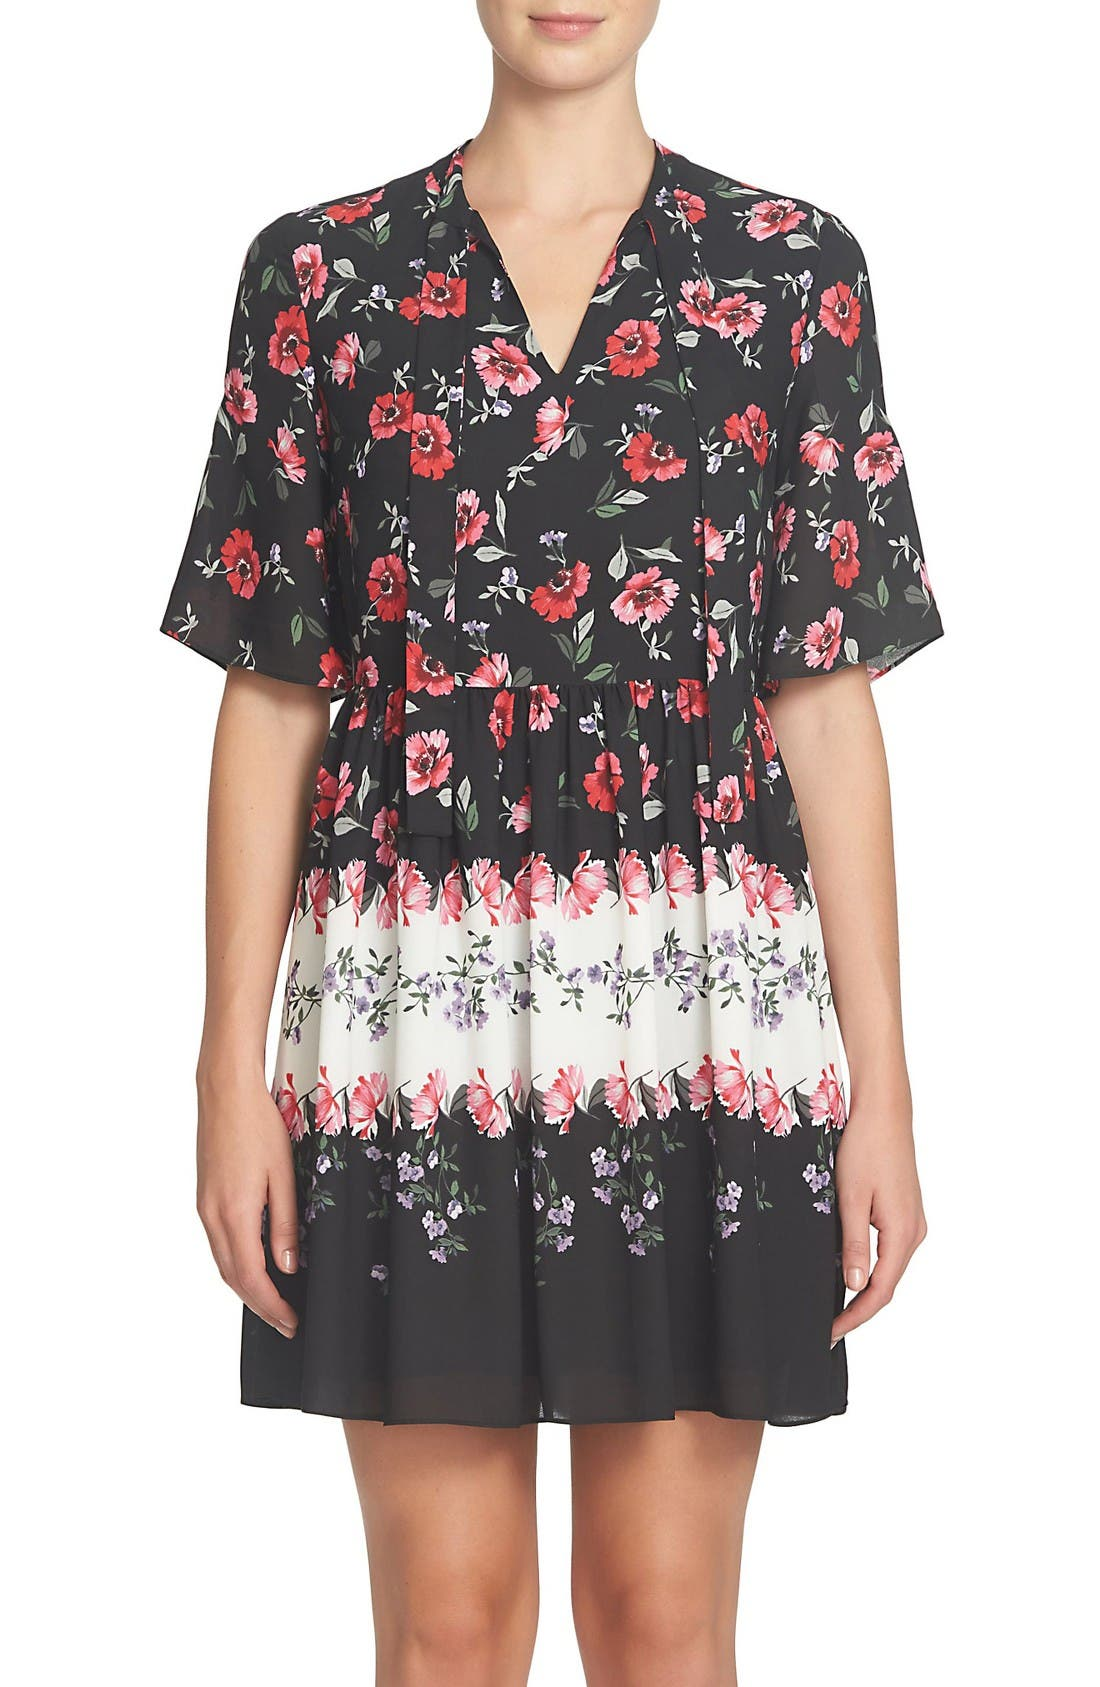 Alternate Image 1 Selected - CeCe Elise Floral Dress (Regular & Petite)